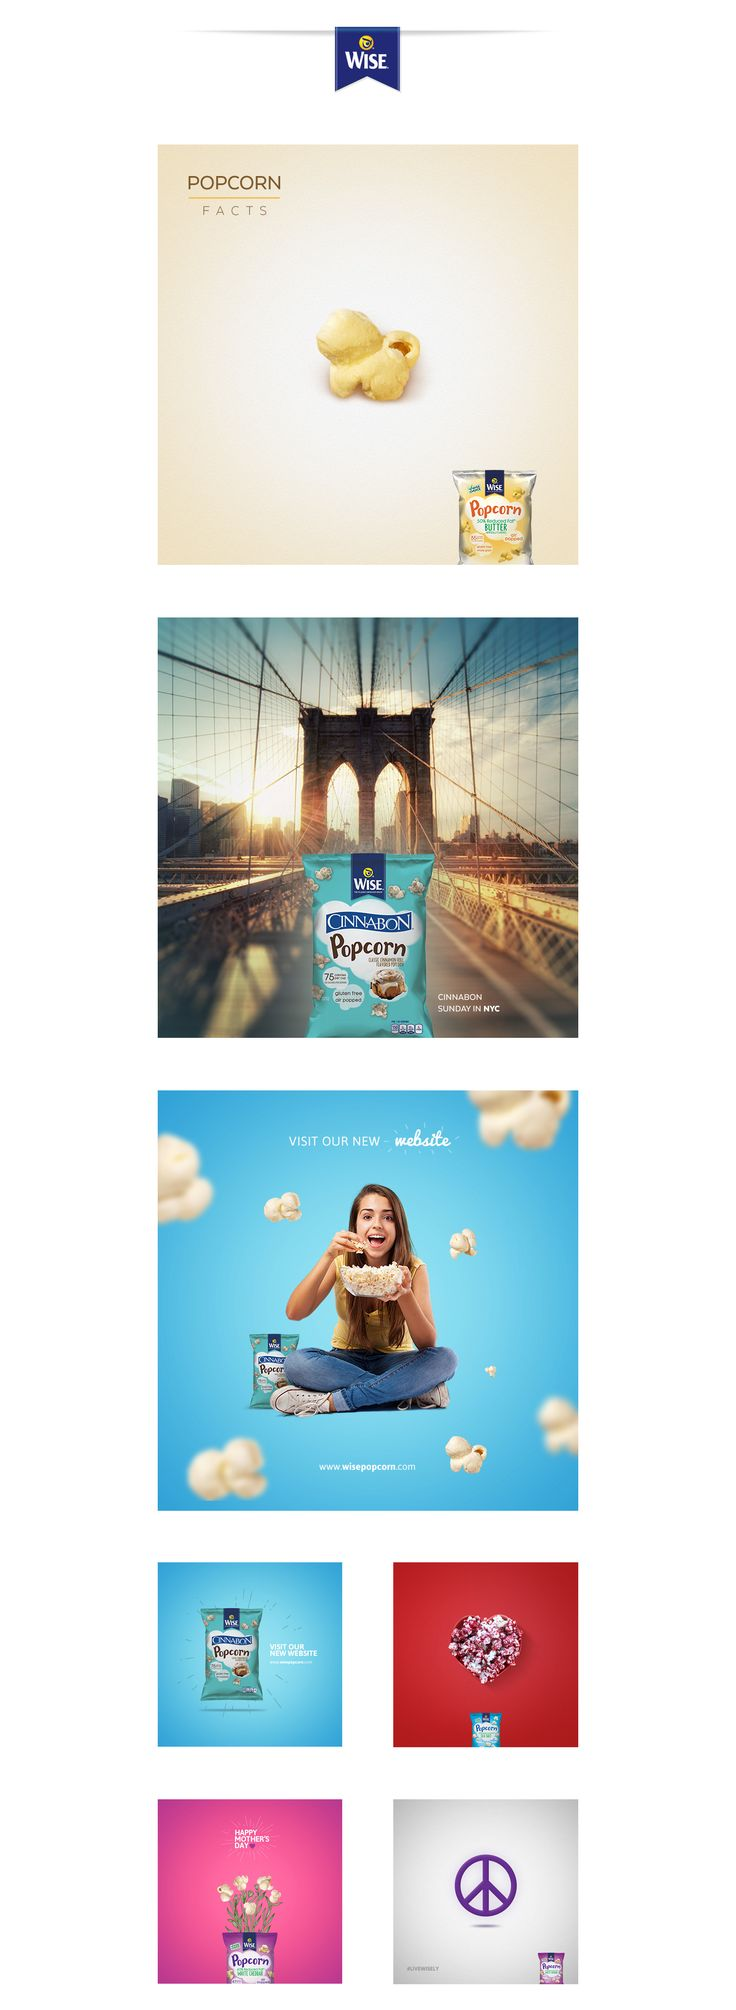 Wise Popcorn | Social Media on Behance